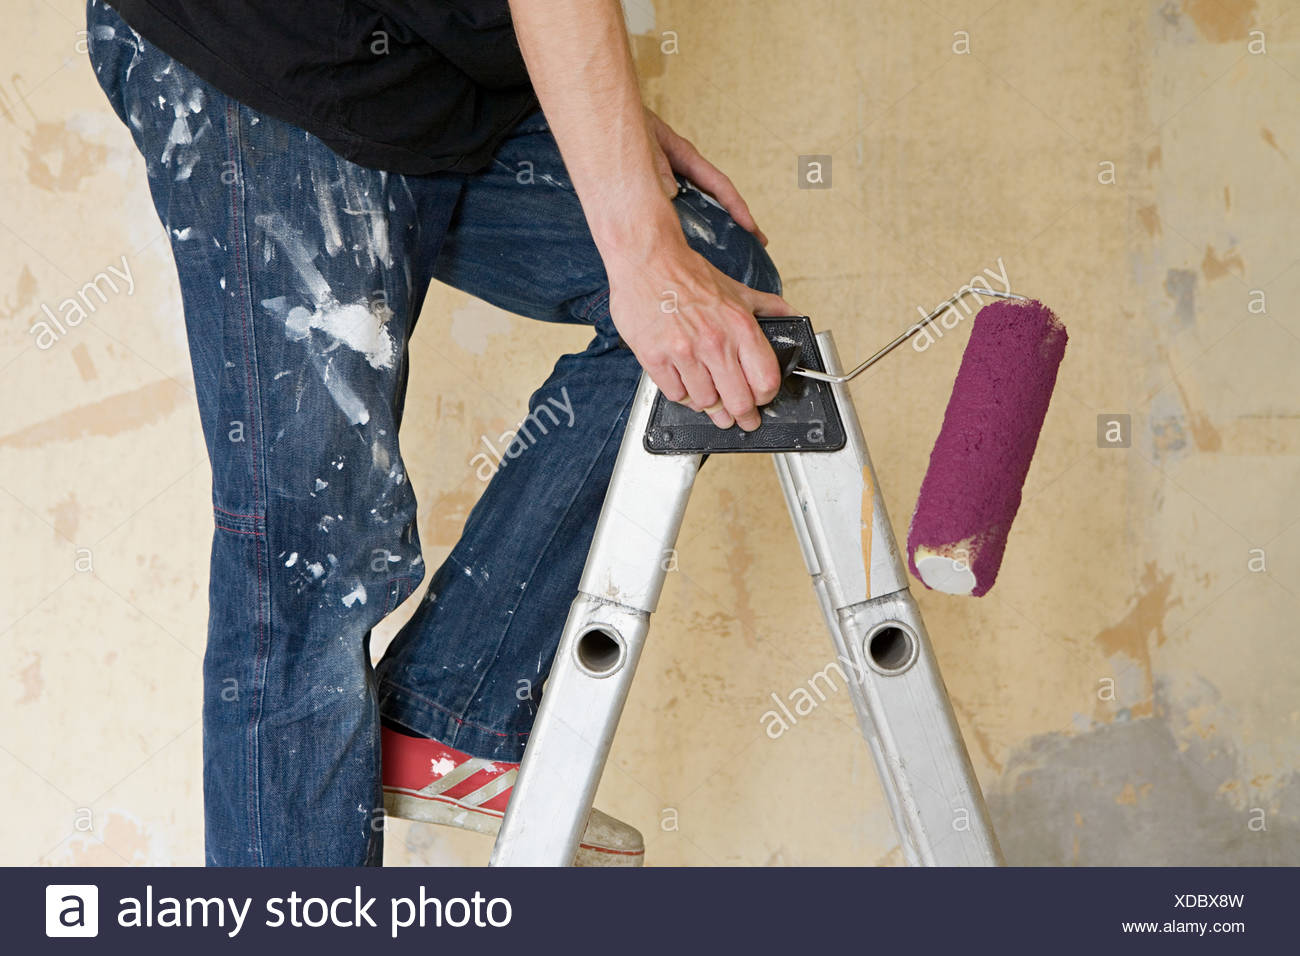 Man on stepladder with paint roller - Stock Image